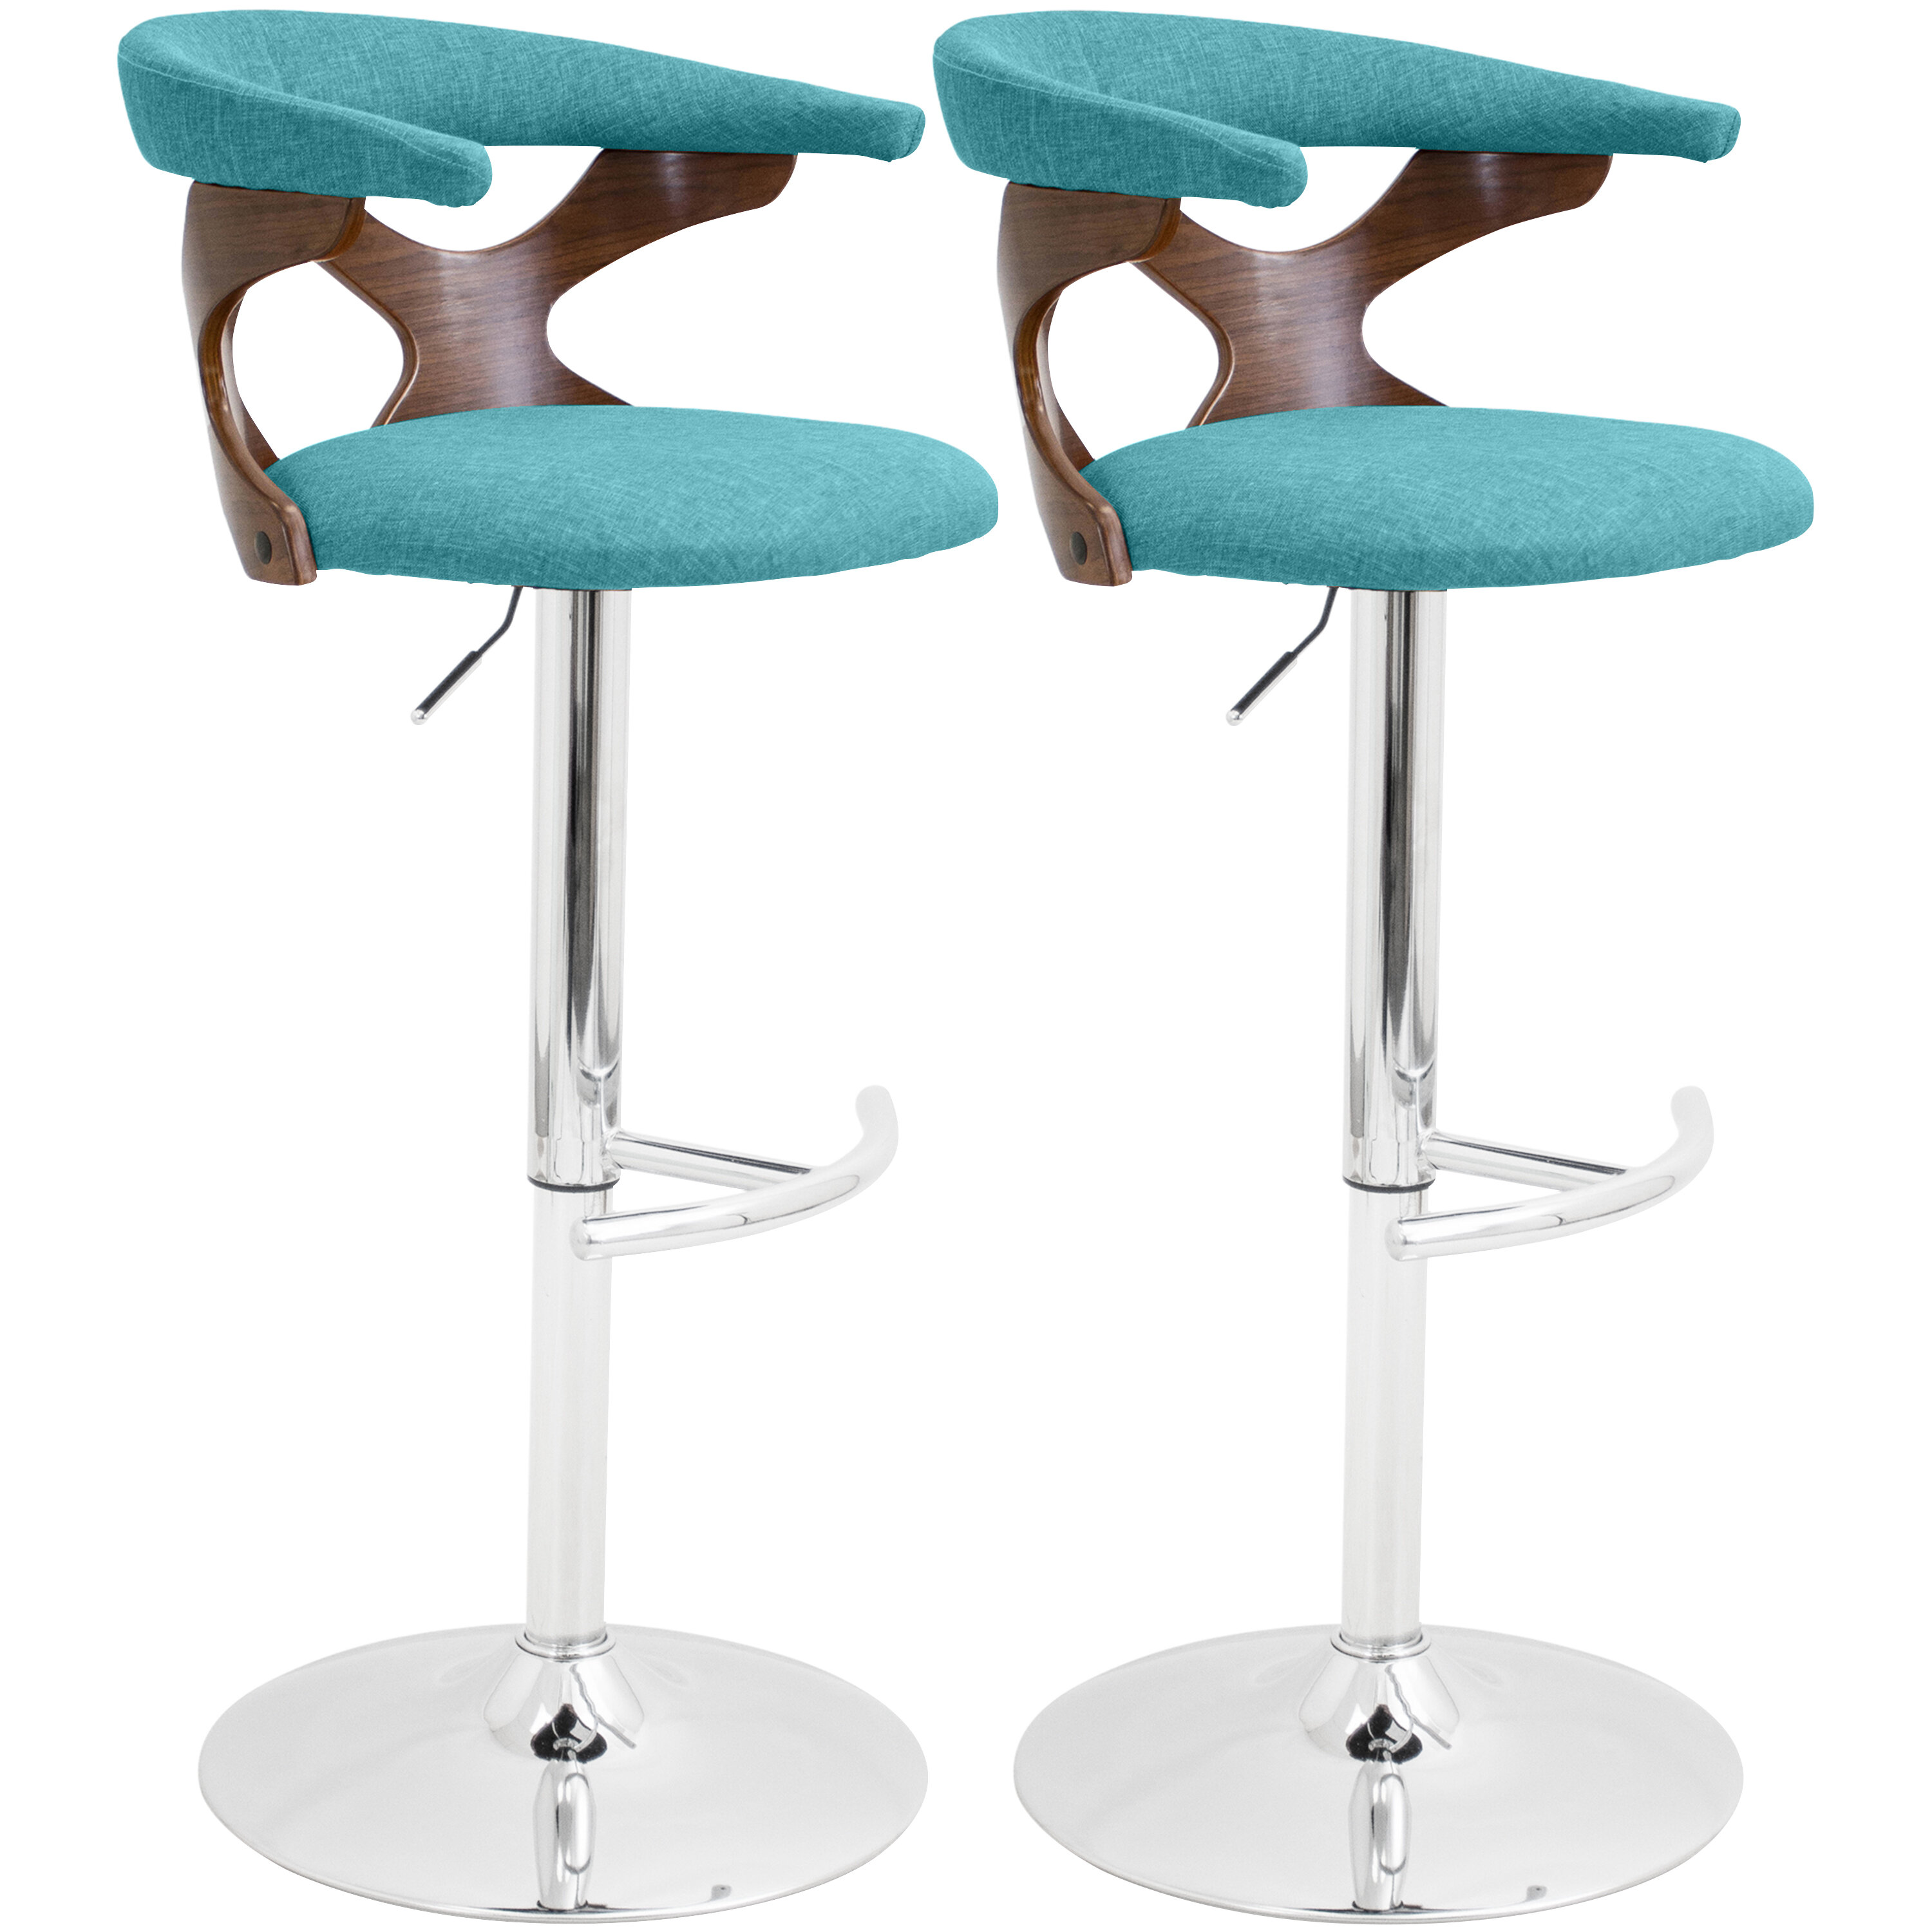 Astounding Altigarron Adjustable Height Swivel Bar Stool Ocoug Best Dining Table And Chair Ideas Images Ocougorg